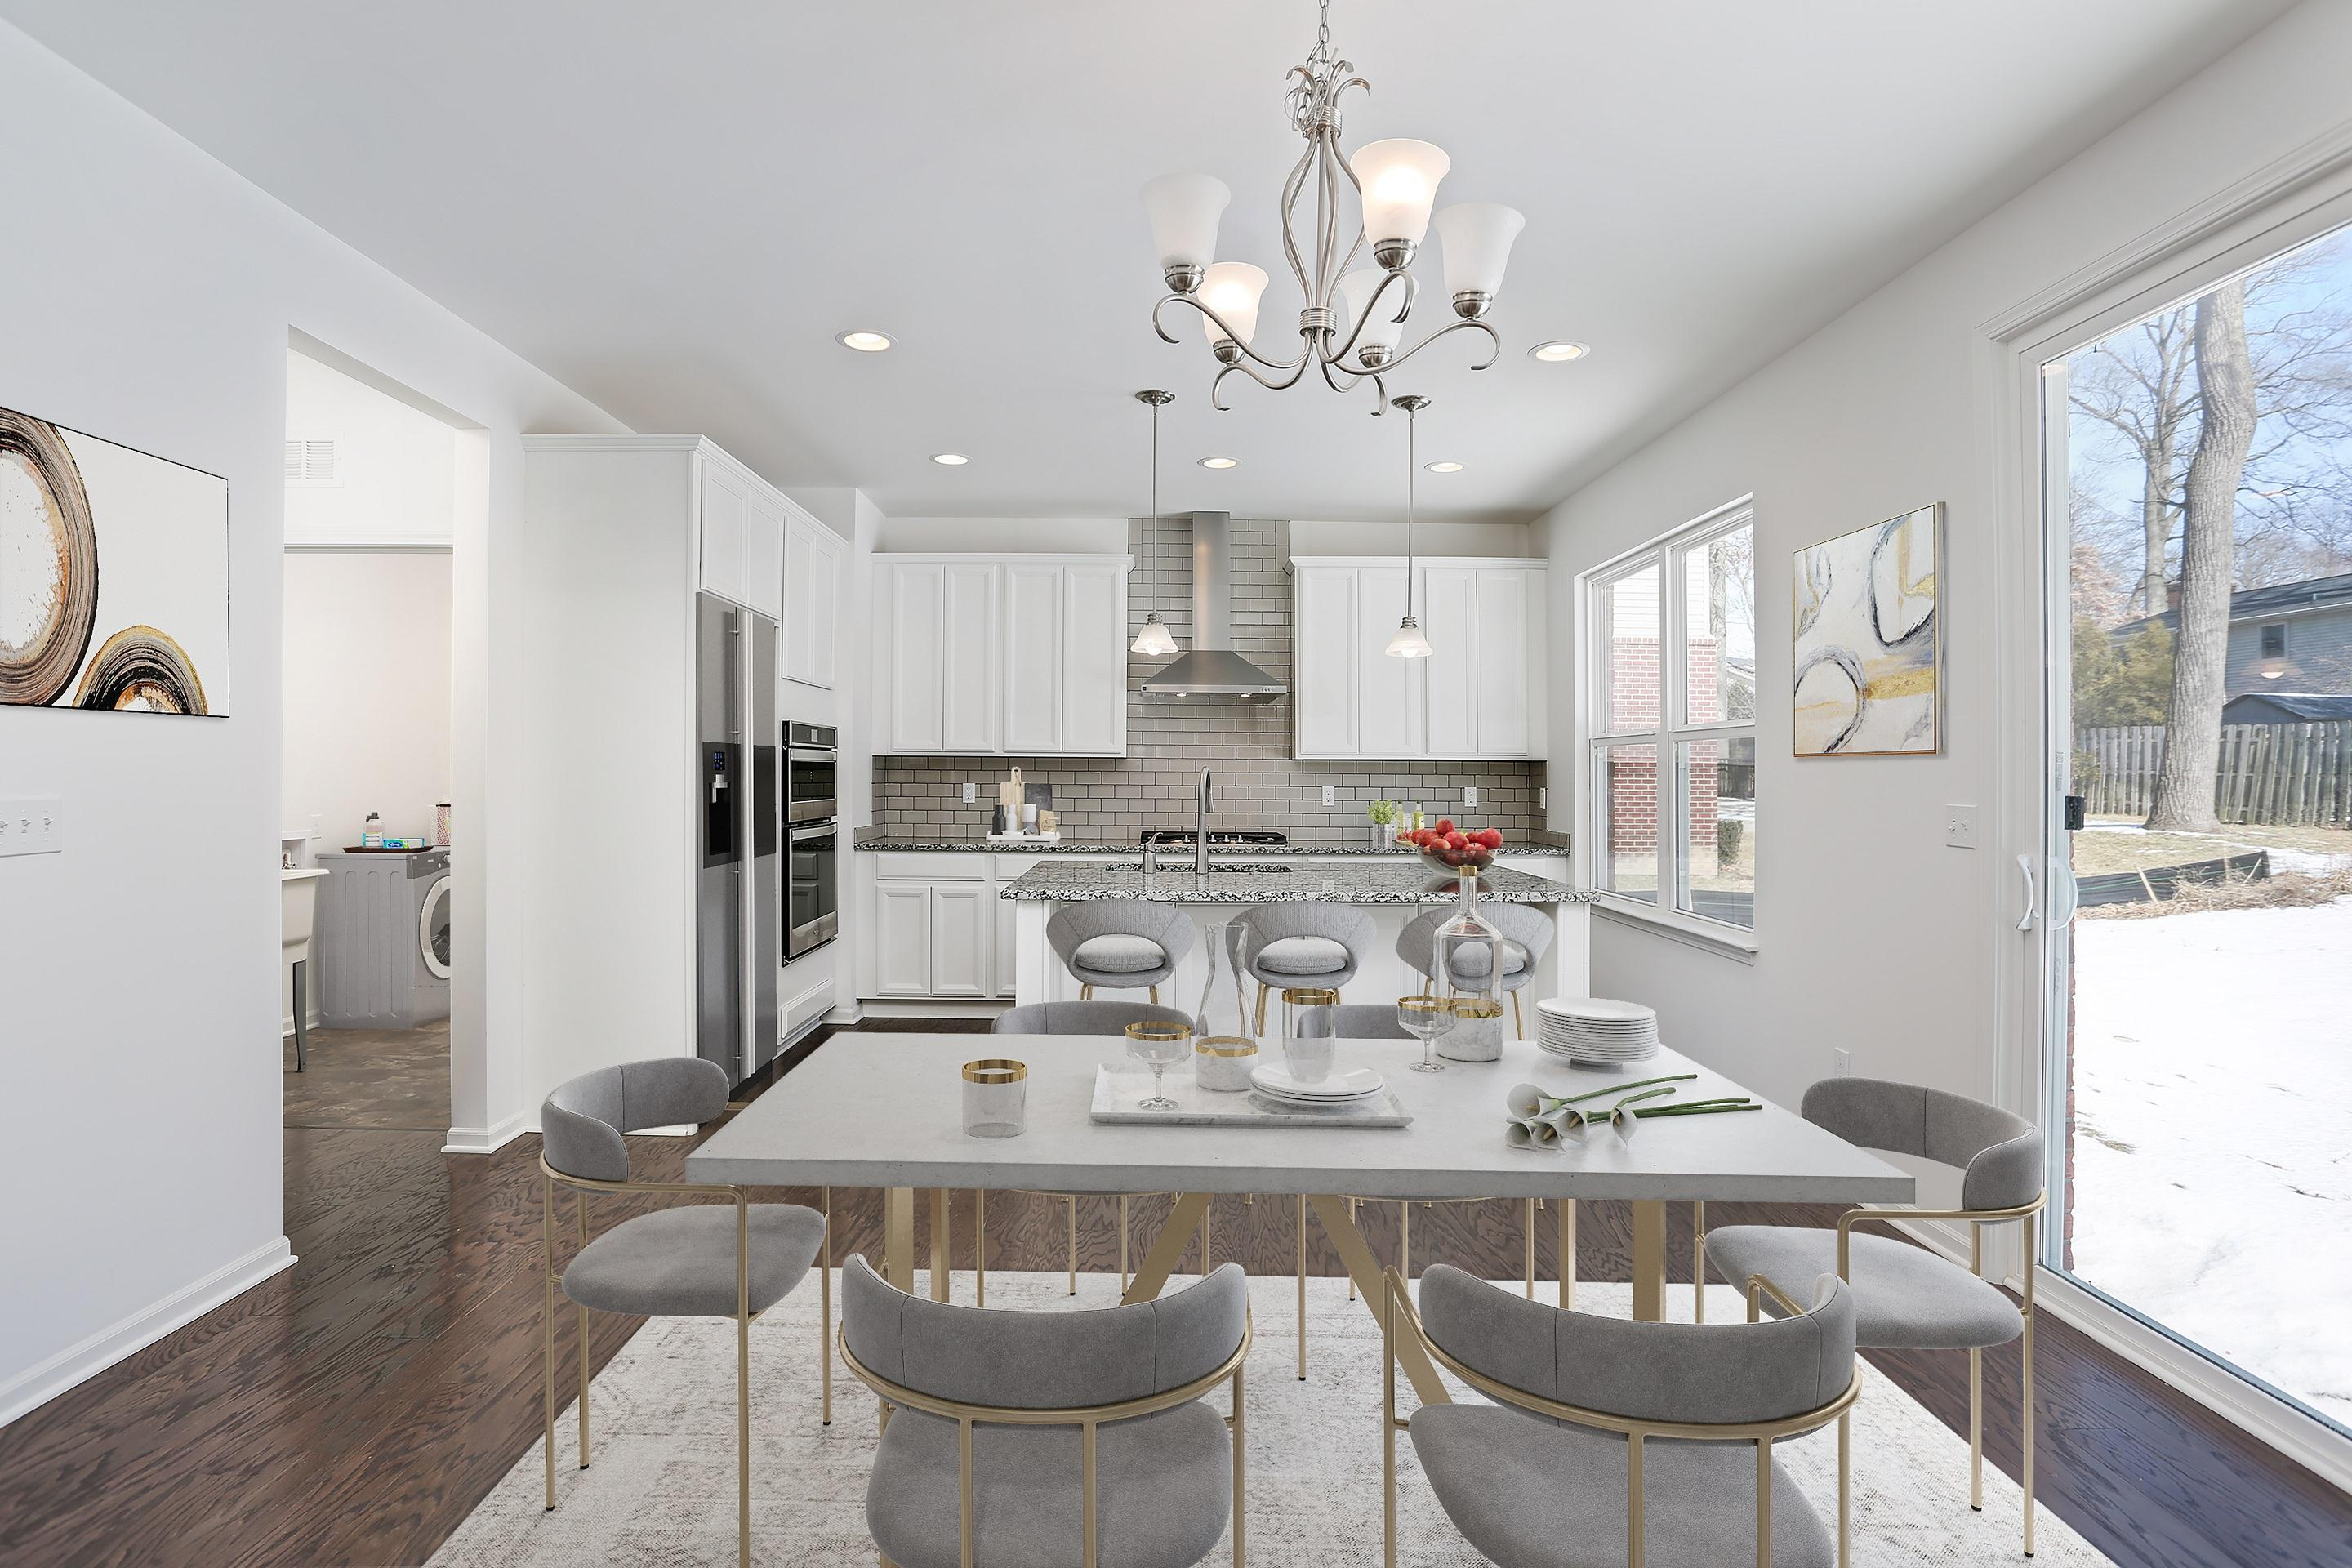 Kitchen featured in the Addison By Singh Homes in Detroit, MI